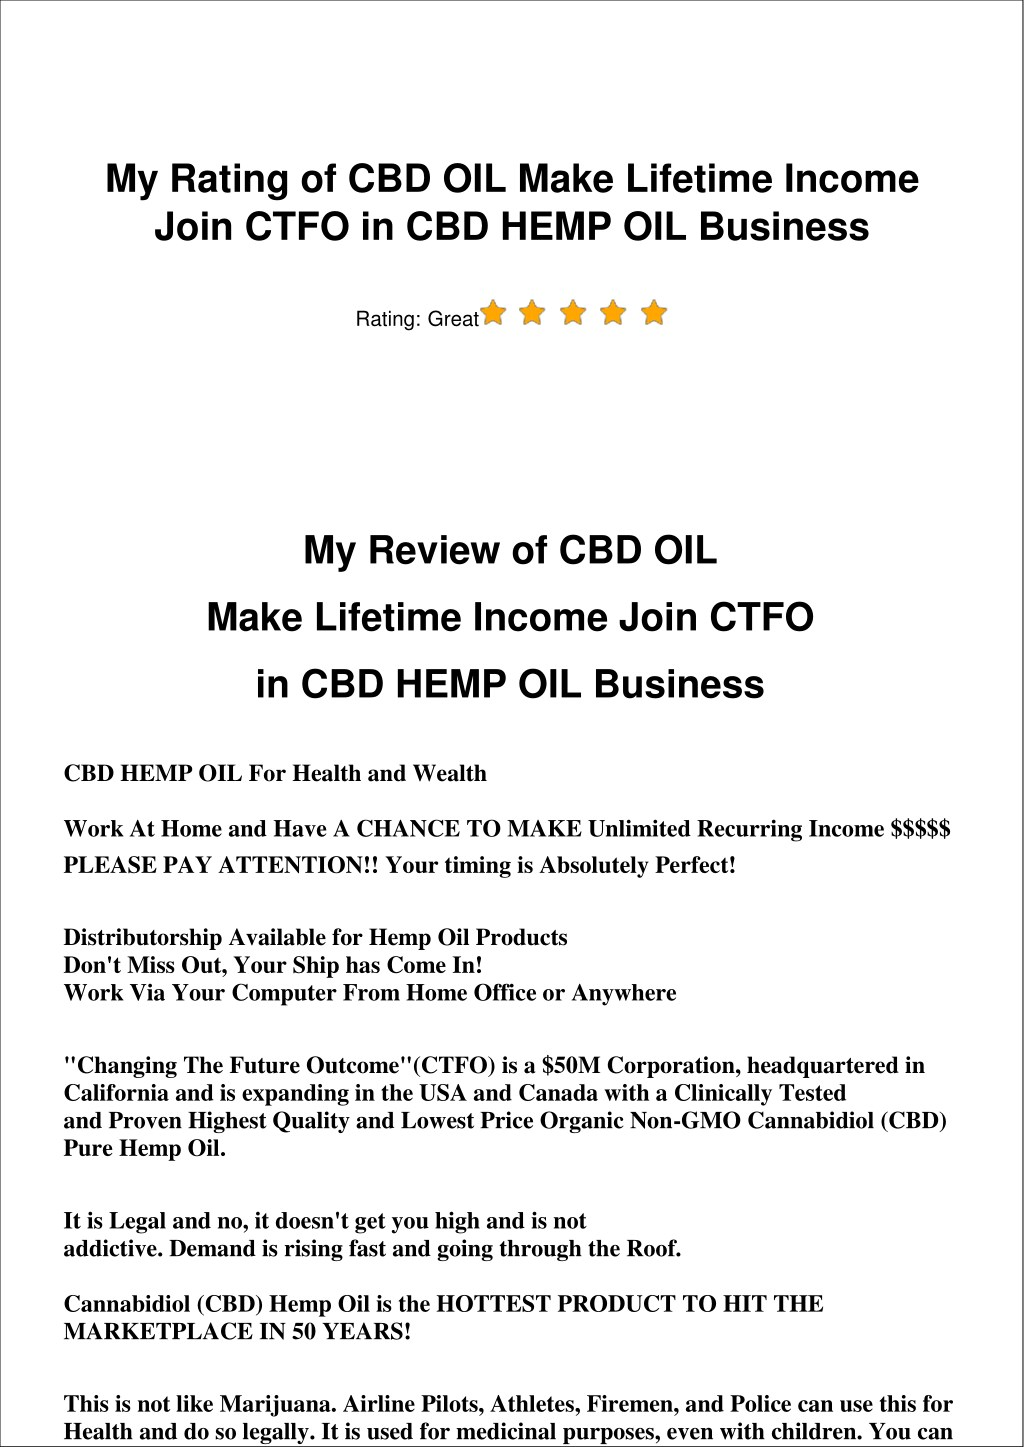 PPT - CBD OIL Make Lifetime Income Join CTFO in CBD HEMP OIL